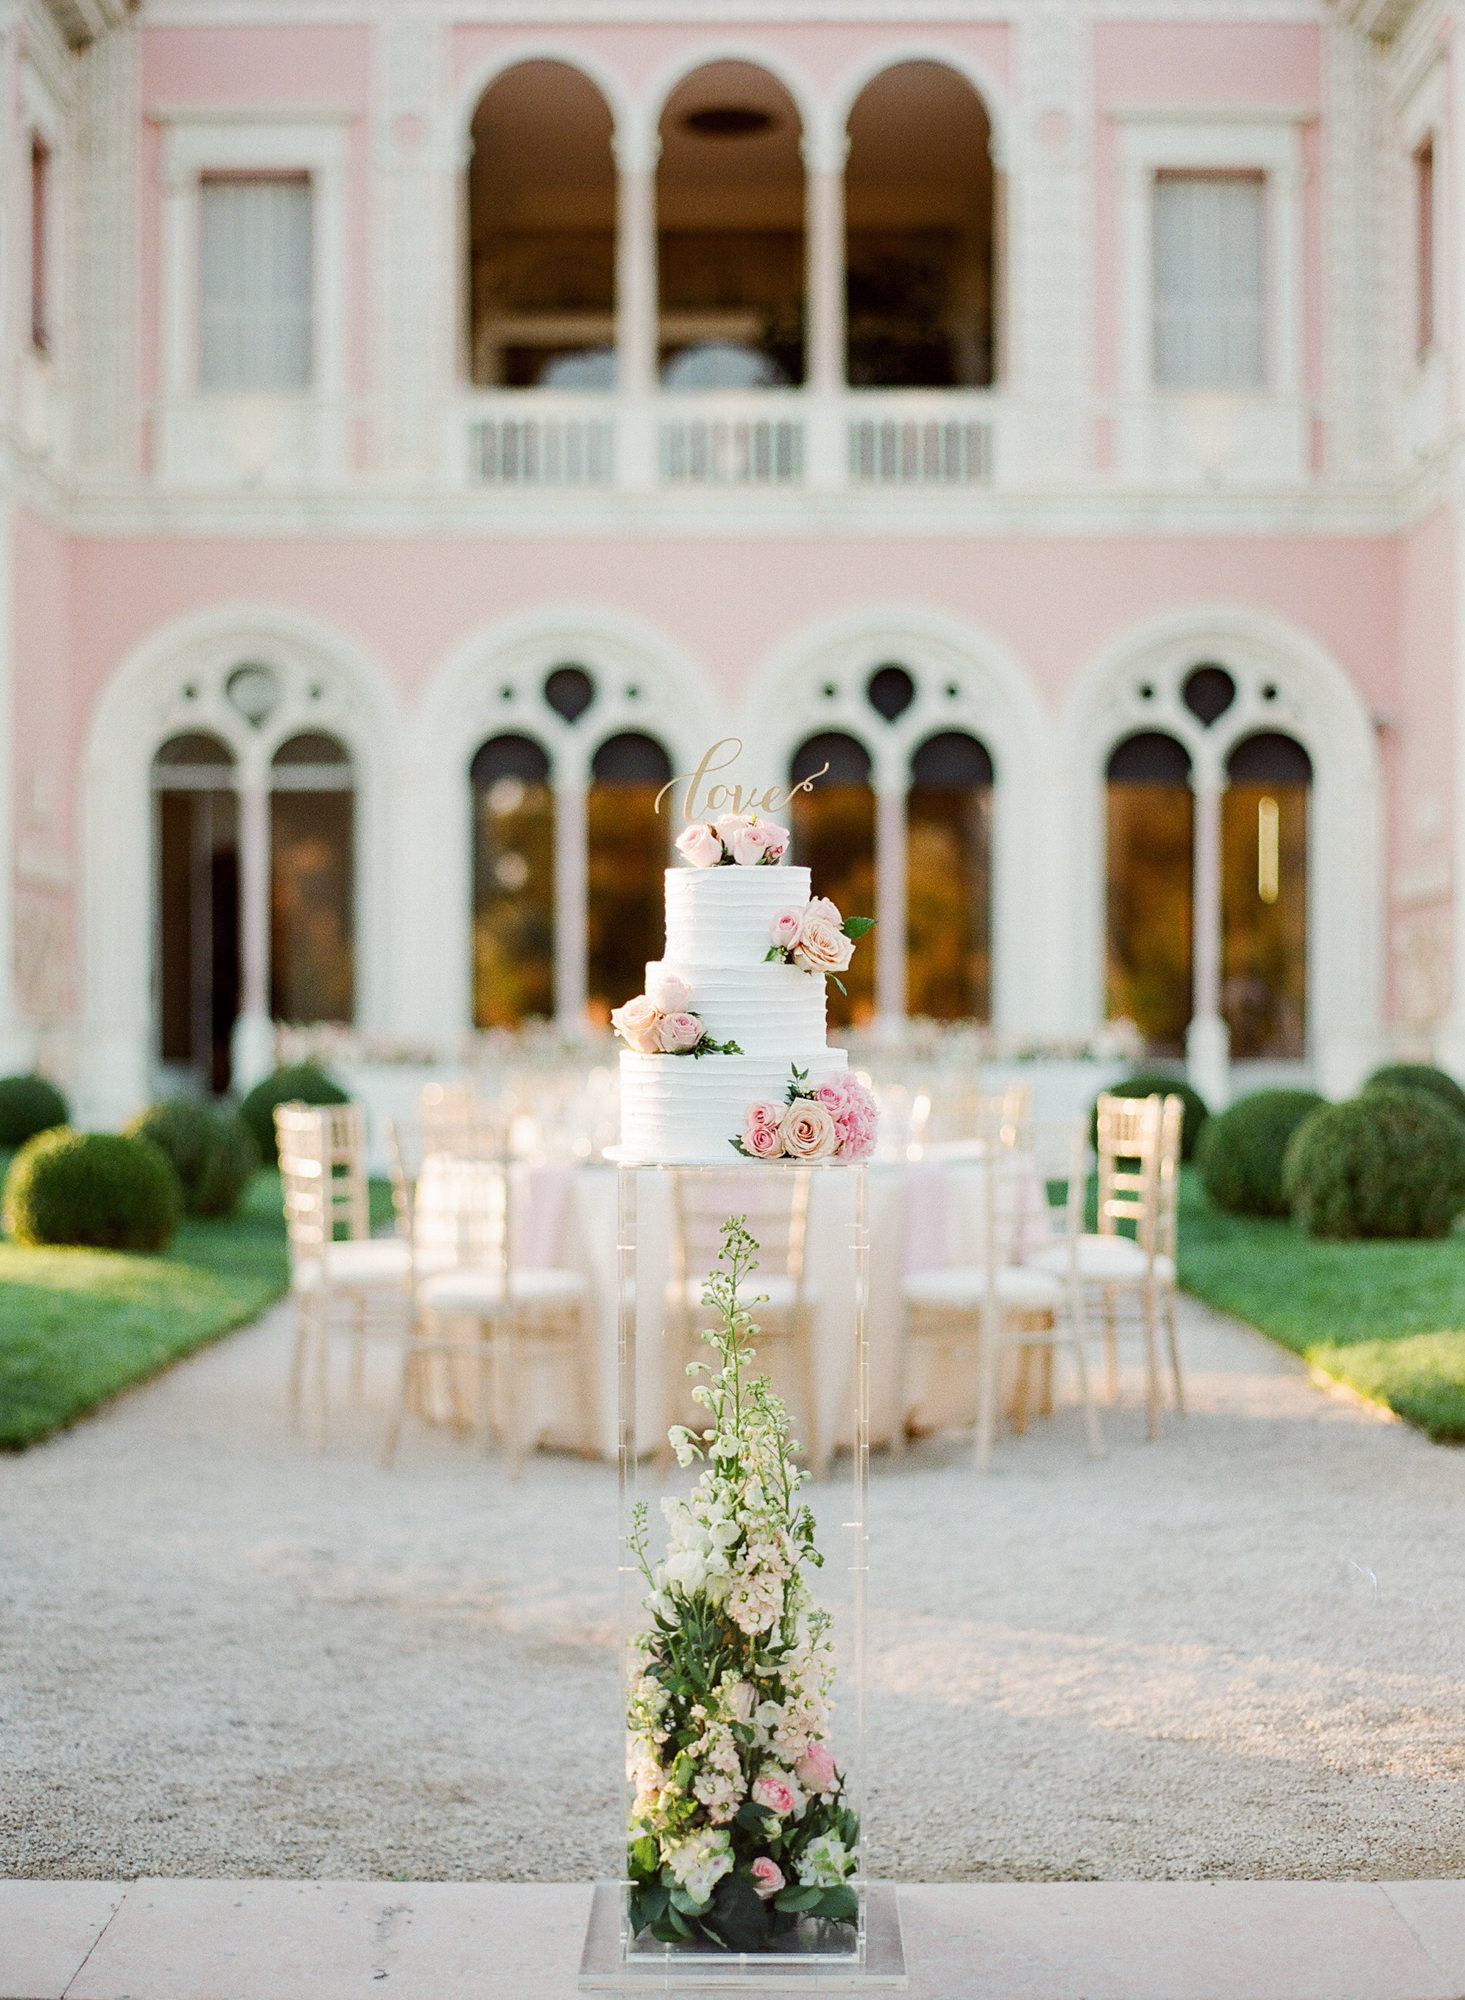 White buttercream cake with roses on pink table at pink villa - Greg Finck Photography